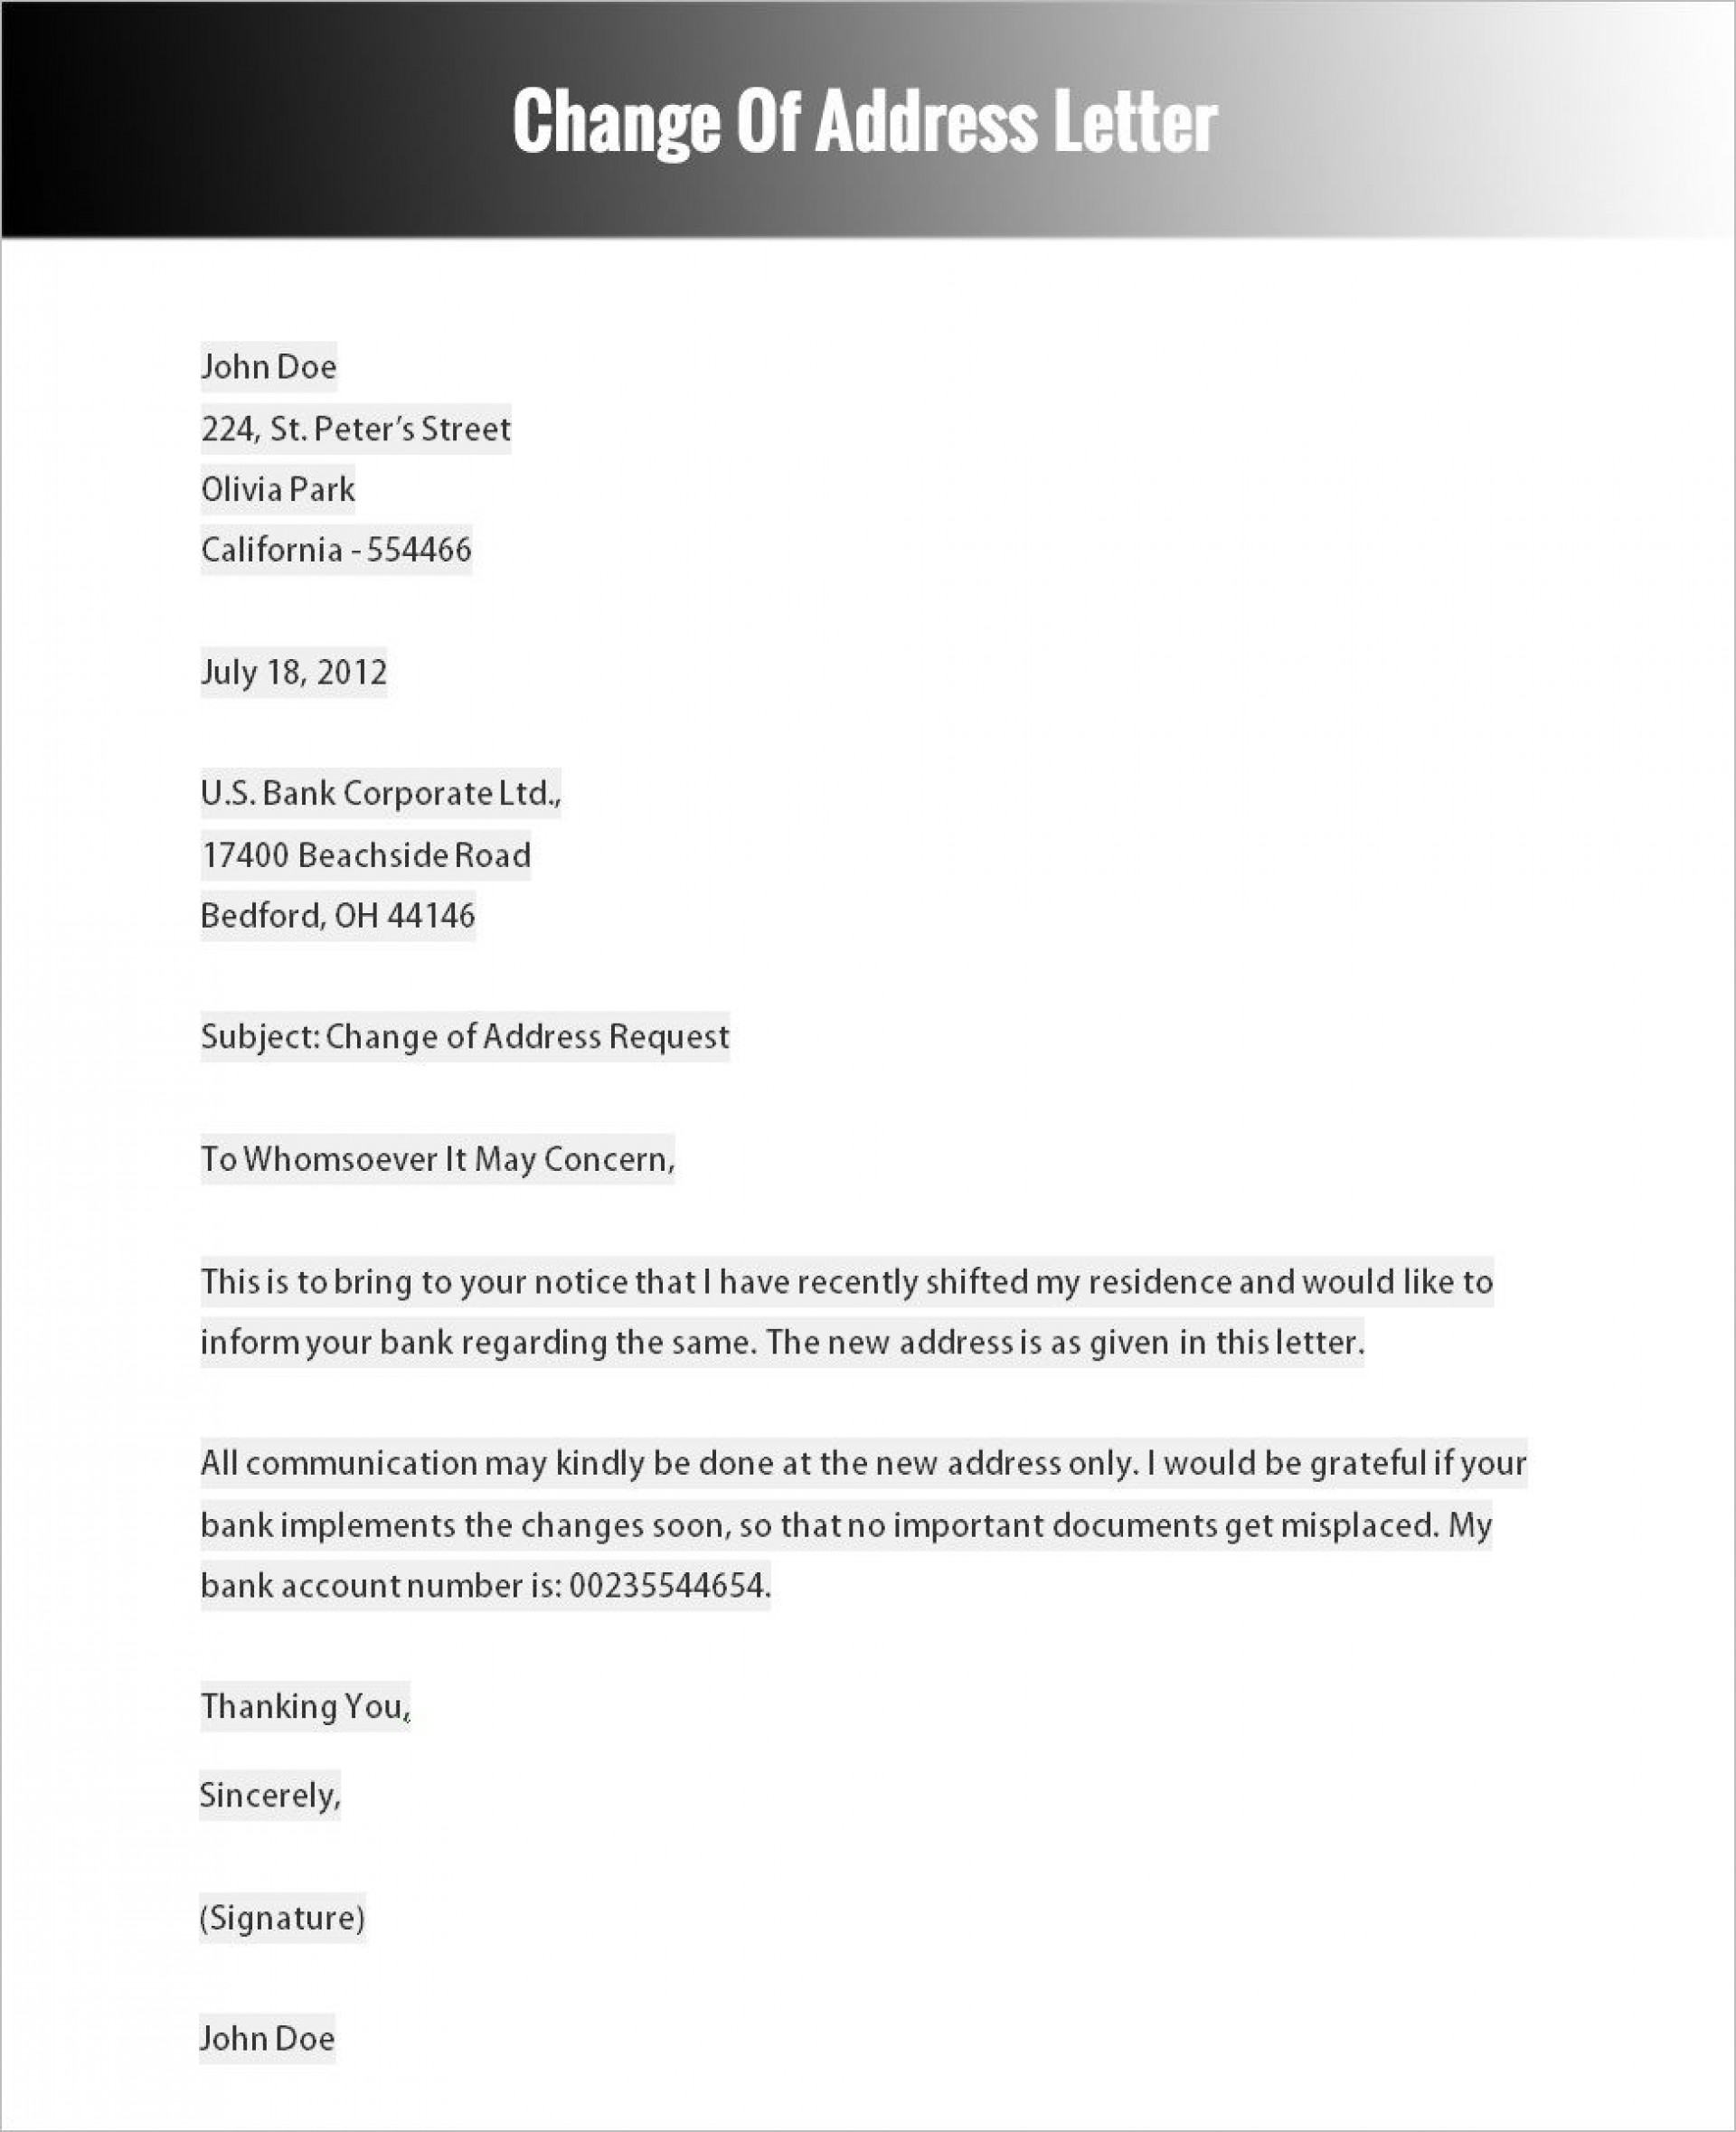 003 Outstanding Change Of Addres Letter Template Concept  Templates For Busines Free1920